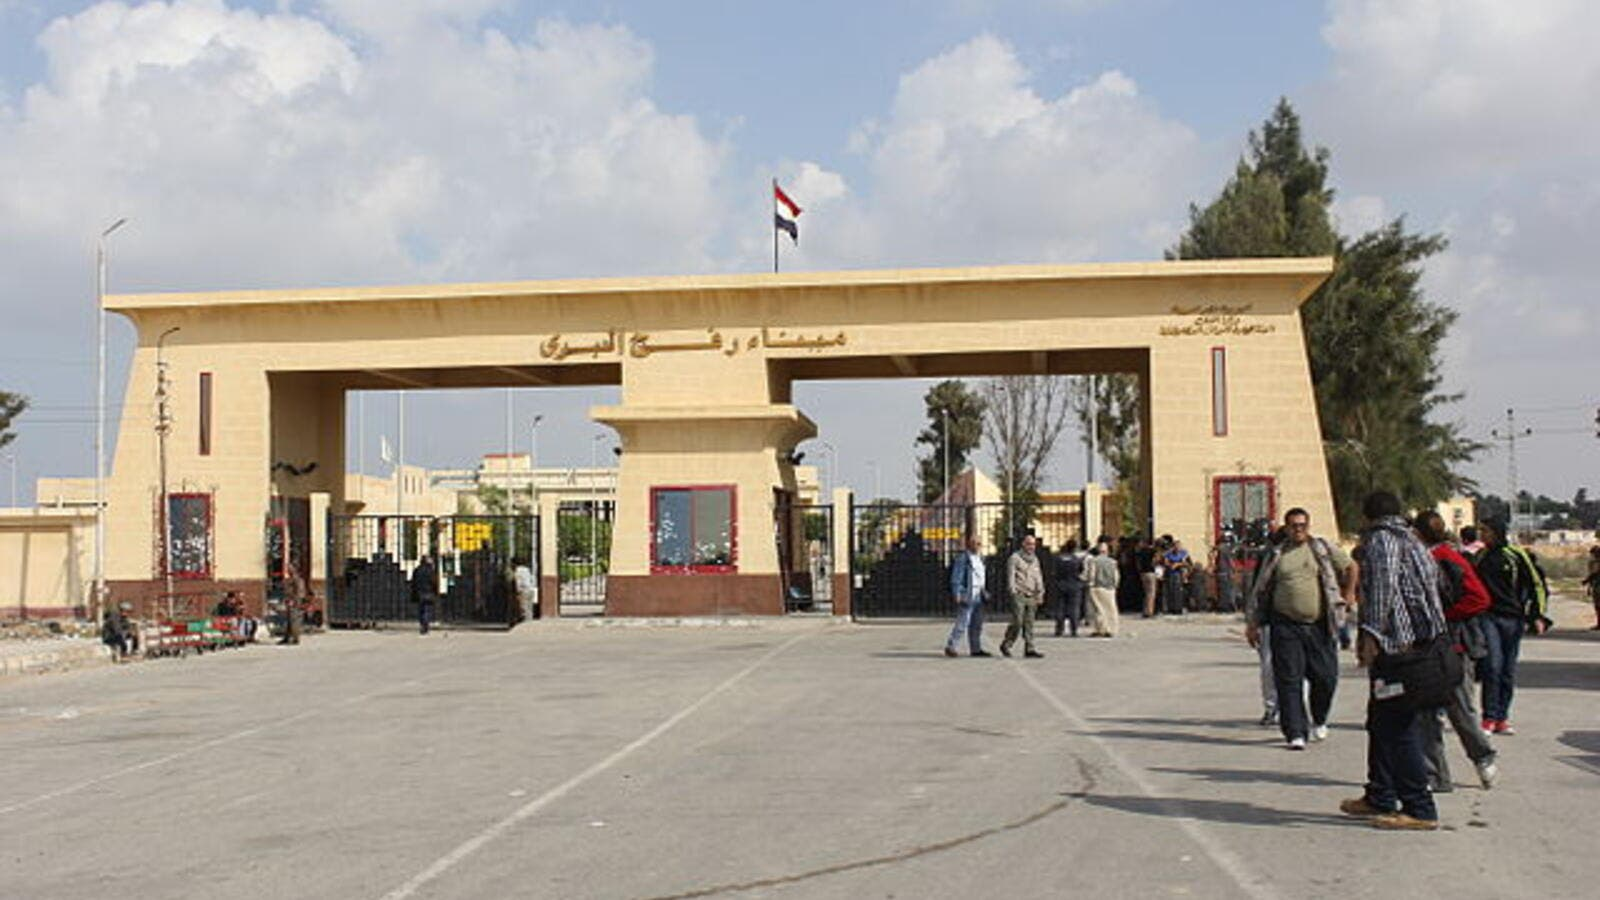 Gazan students who have already been admitted to universities and received visas are currently waiting for the opening of the Rafah border - Gaza's only door to the outside world (Wikimedia Commons)